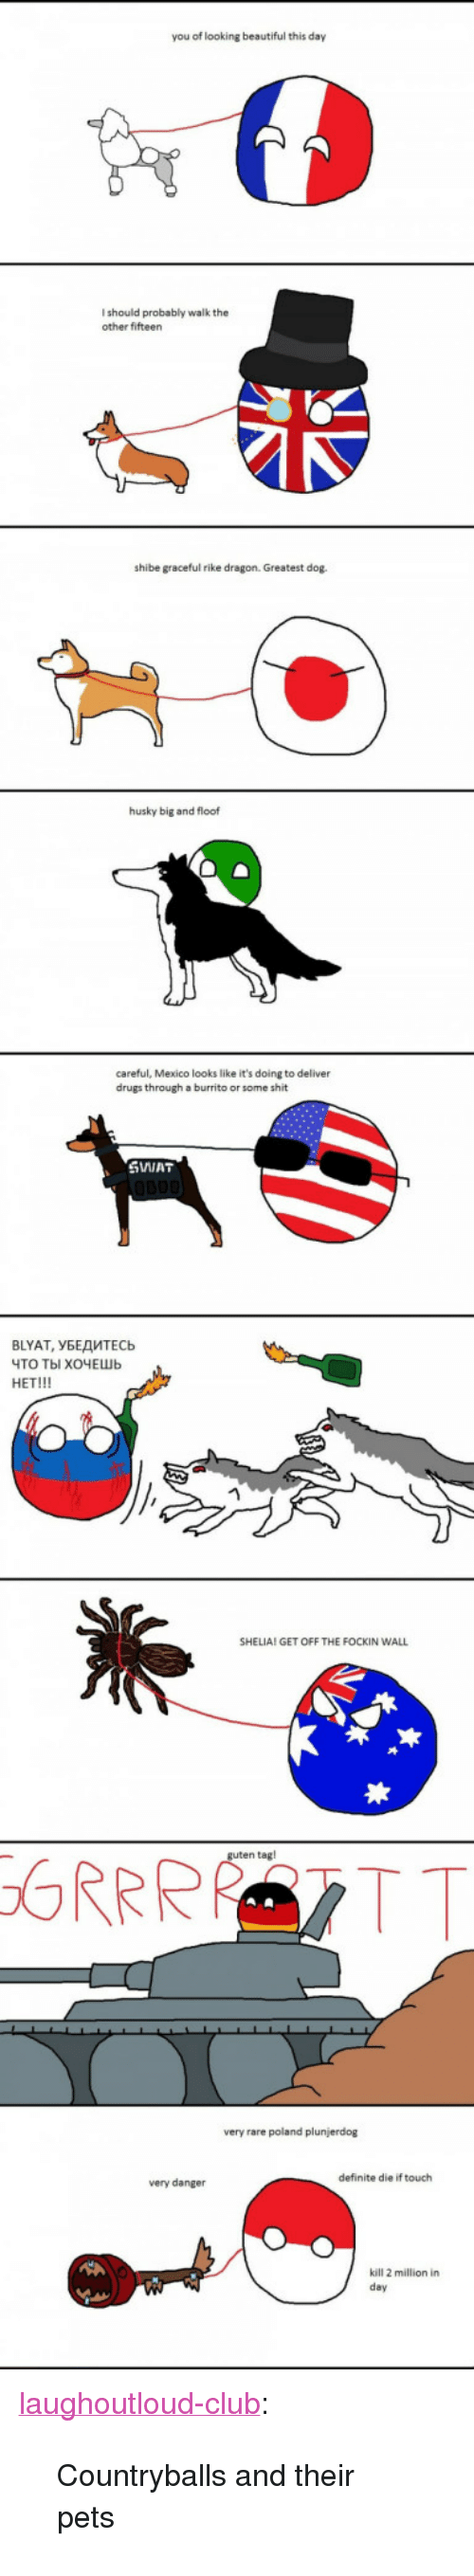 """shibe: you of looking beautiful this day  I should probably walk the  other fifteen  shibe graceful rike dragon. Greatest dog.  husky big and floof  careful, Mexico looks like it's doing to deliver  drugs through a burrito or some shit  SWIAT  BLYAT, УБЕДИТЕСЬ  ЧТО ТЫ ХОЧЕШЬ  HET!!!  SHELIA! GET OFF THE FOCKIN WALI  n tagl  very rare poland plunjerdog  definite die if touch  very danger  kill 2 million in  day <p><a href=""""http://laughoutloud-club.tumblr.com/post/158565404742/countryballs-and-their-pets"""" class=""""tumblr_blog"""">laughoutloud-club</a>:</p>  <blockquote><p>Countryballs and their pets</p></blockquote>"""